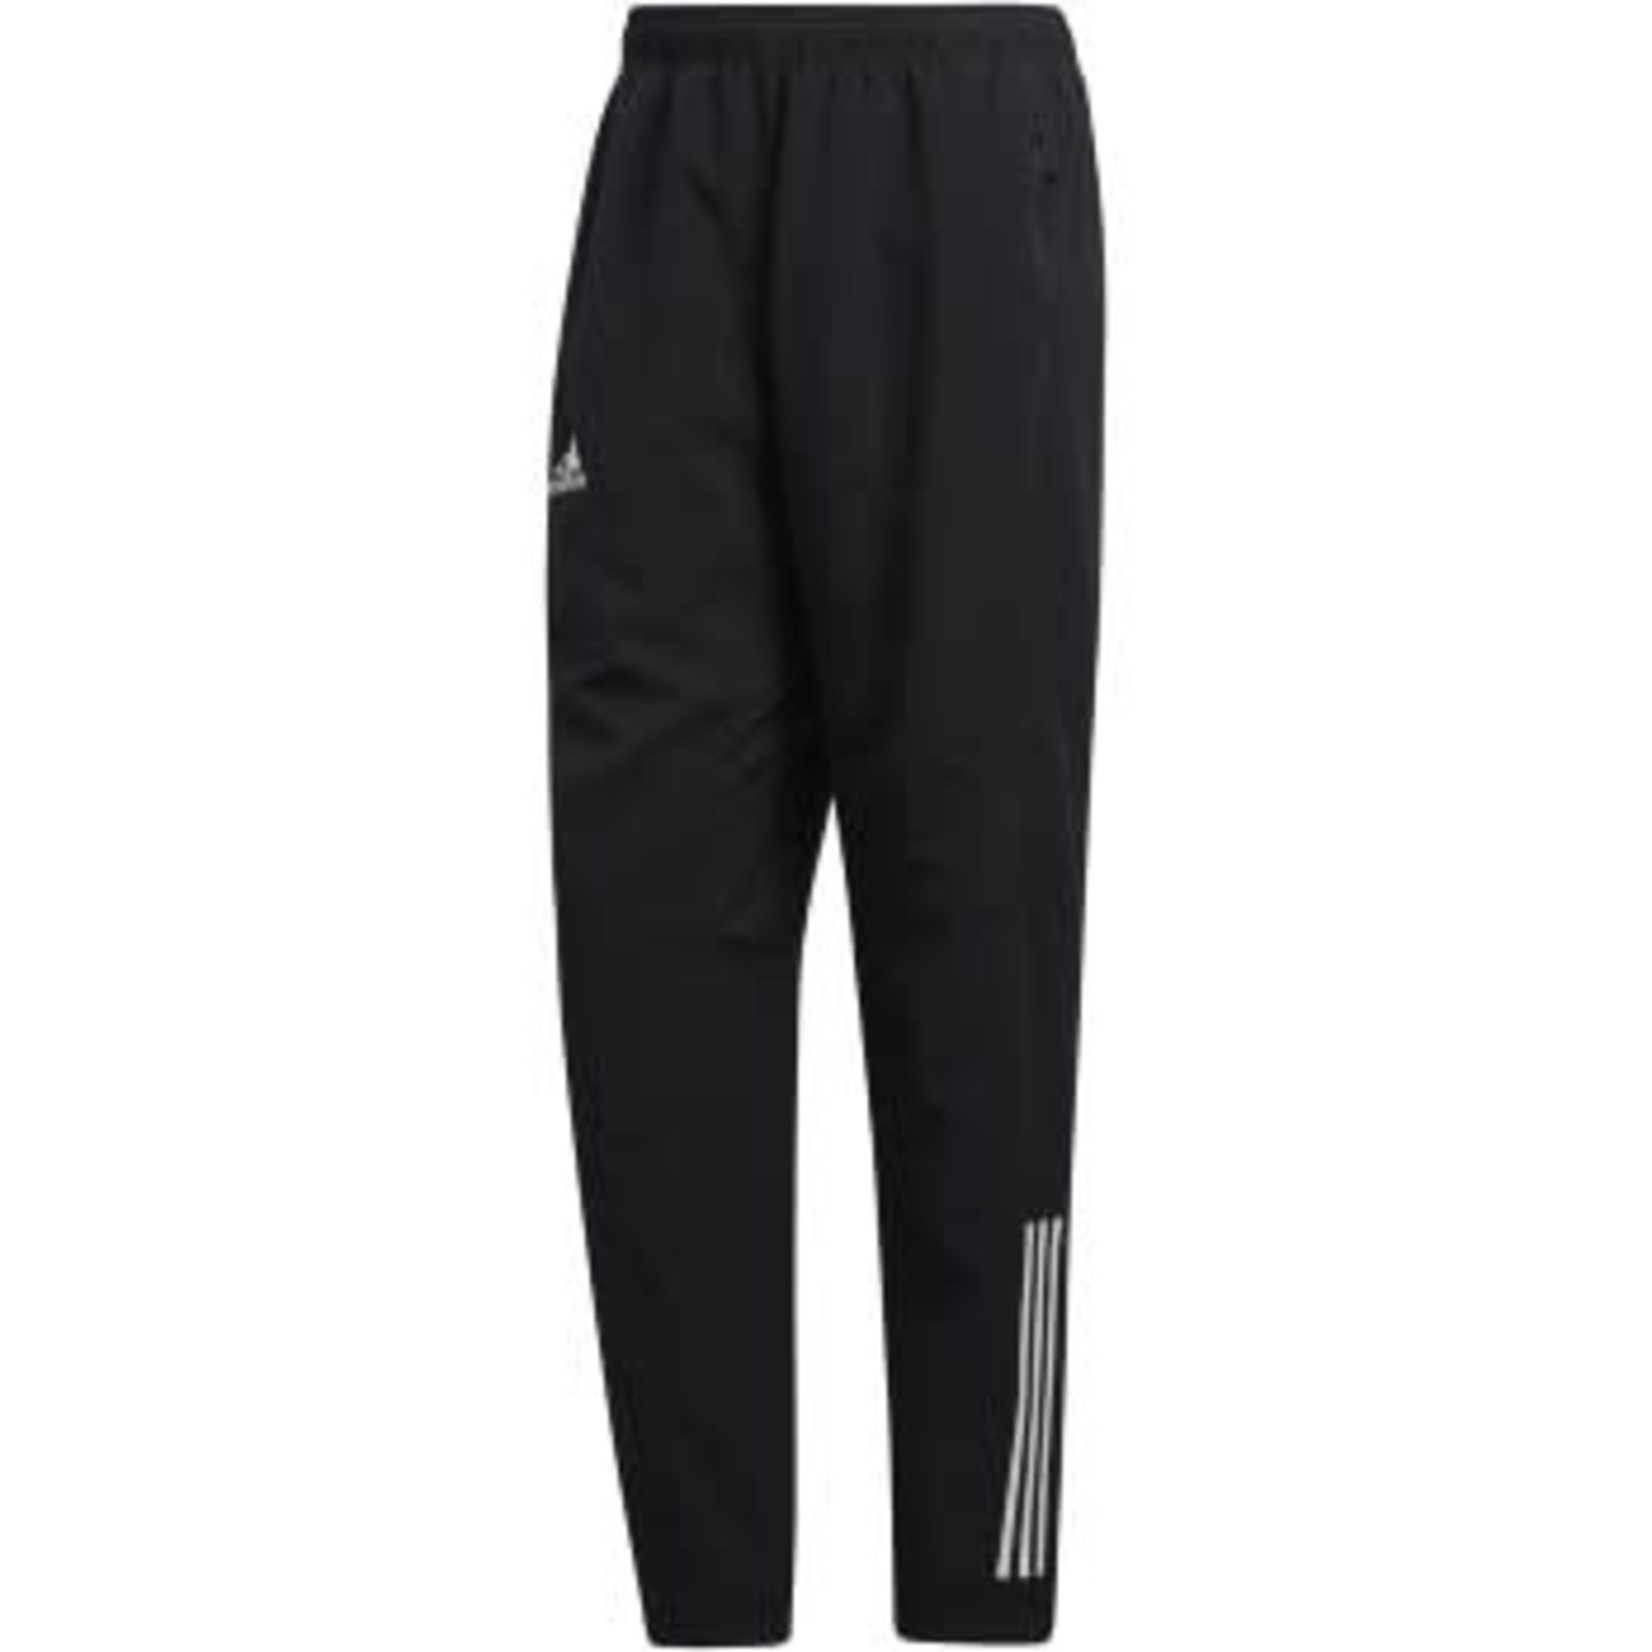 ADIDAS Guelph Gryphons Adidas Rink Suit Pant - Adult